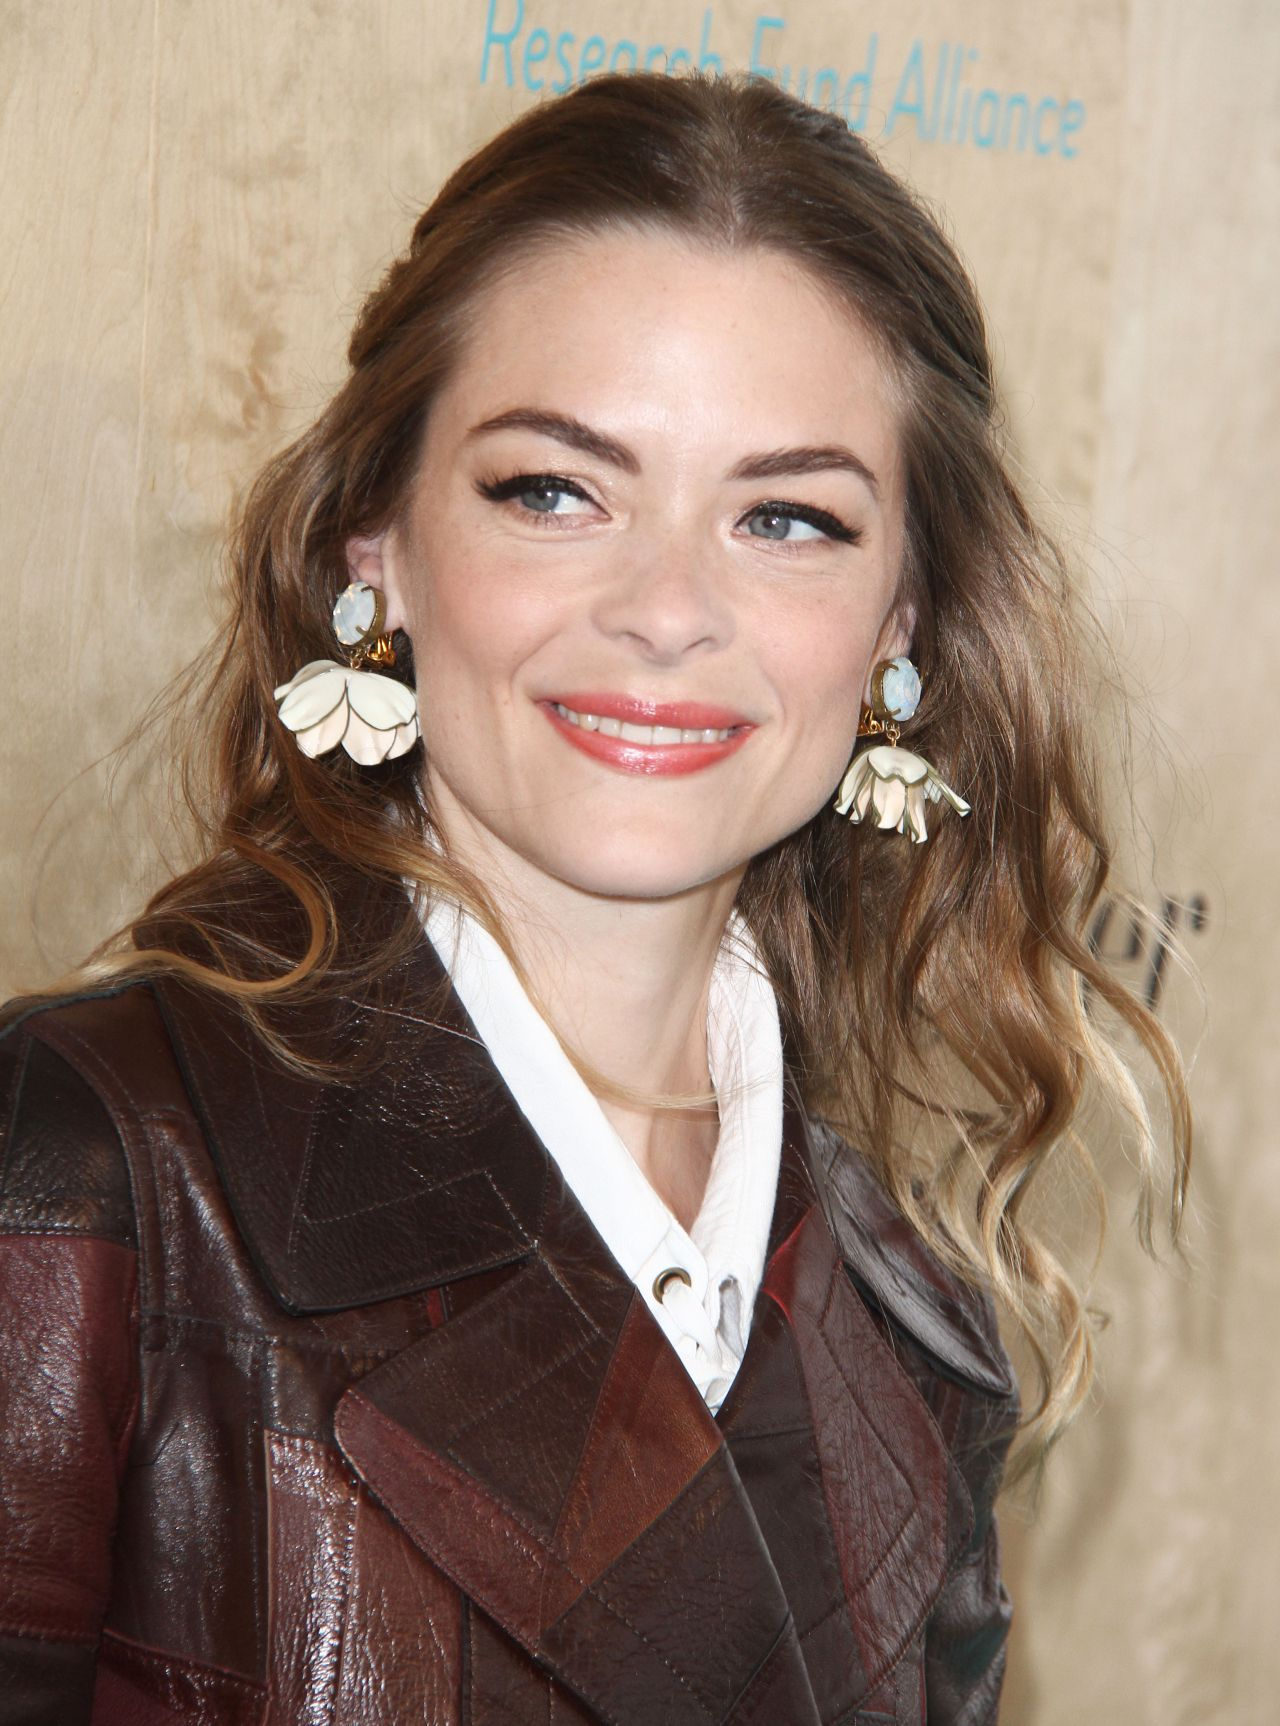 King ovarian cancer research fund alliance super saturday in jaime king ovarian cancer research fund alliance super saturday in santa monica 6112016 sciox Choice Image